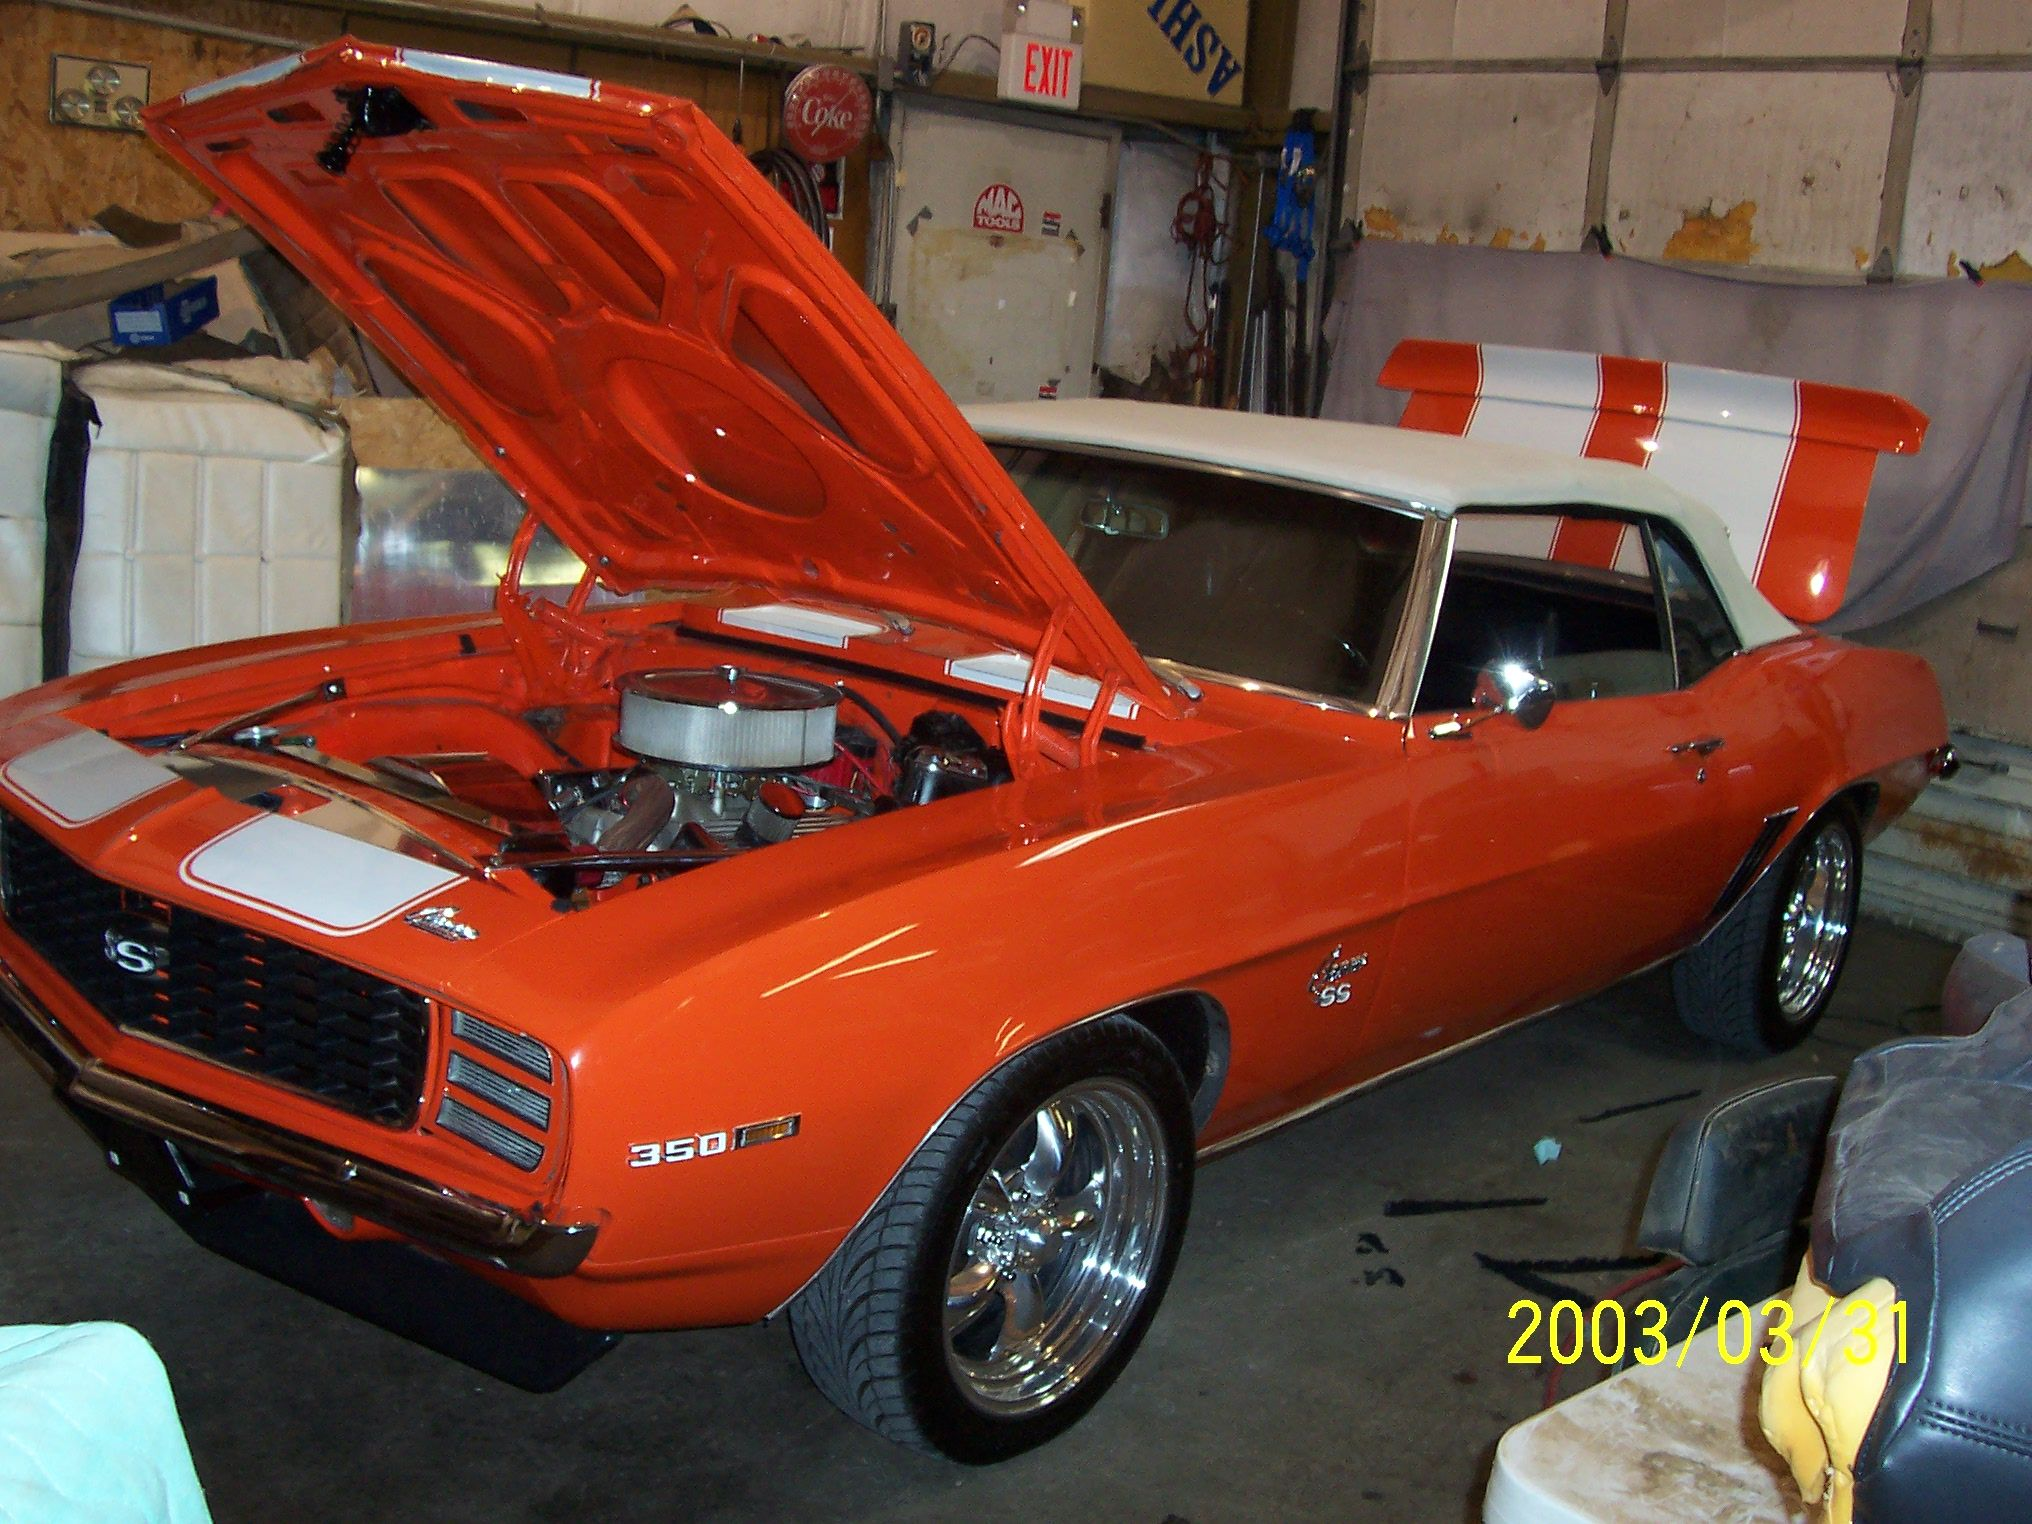 Classic muscle car restoration, engine, paint, upholstery ...